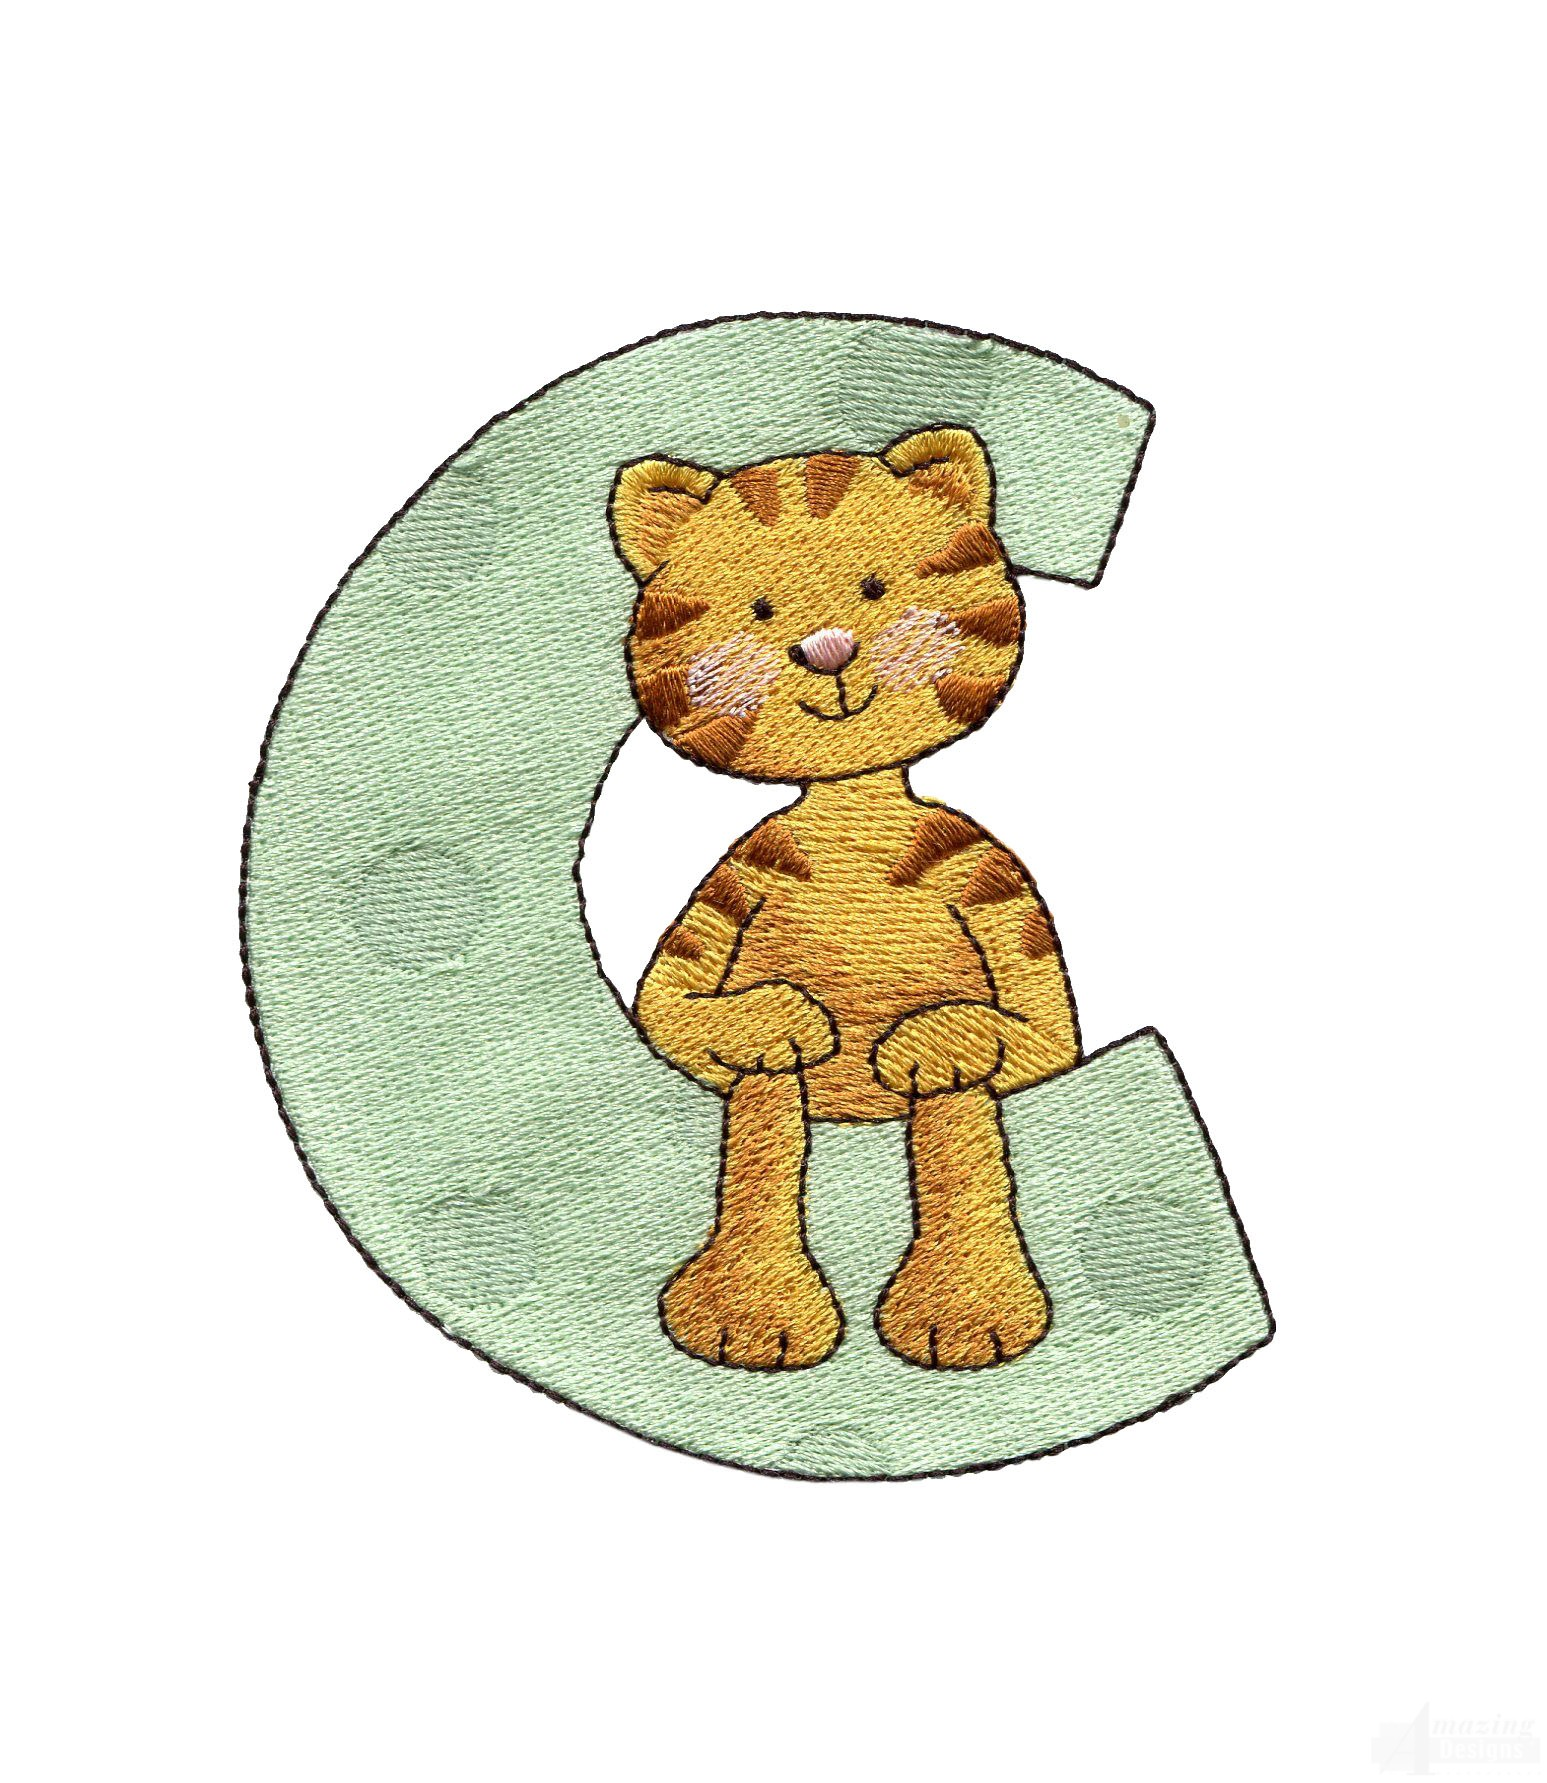 Letter c cat embroidery design for Embroidery office design version 7 5